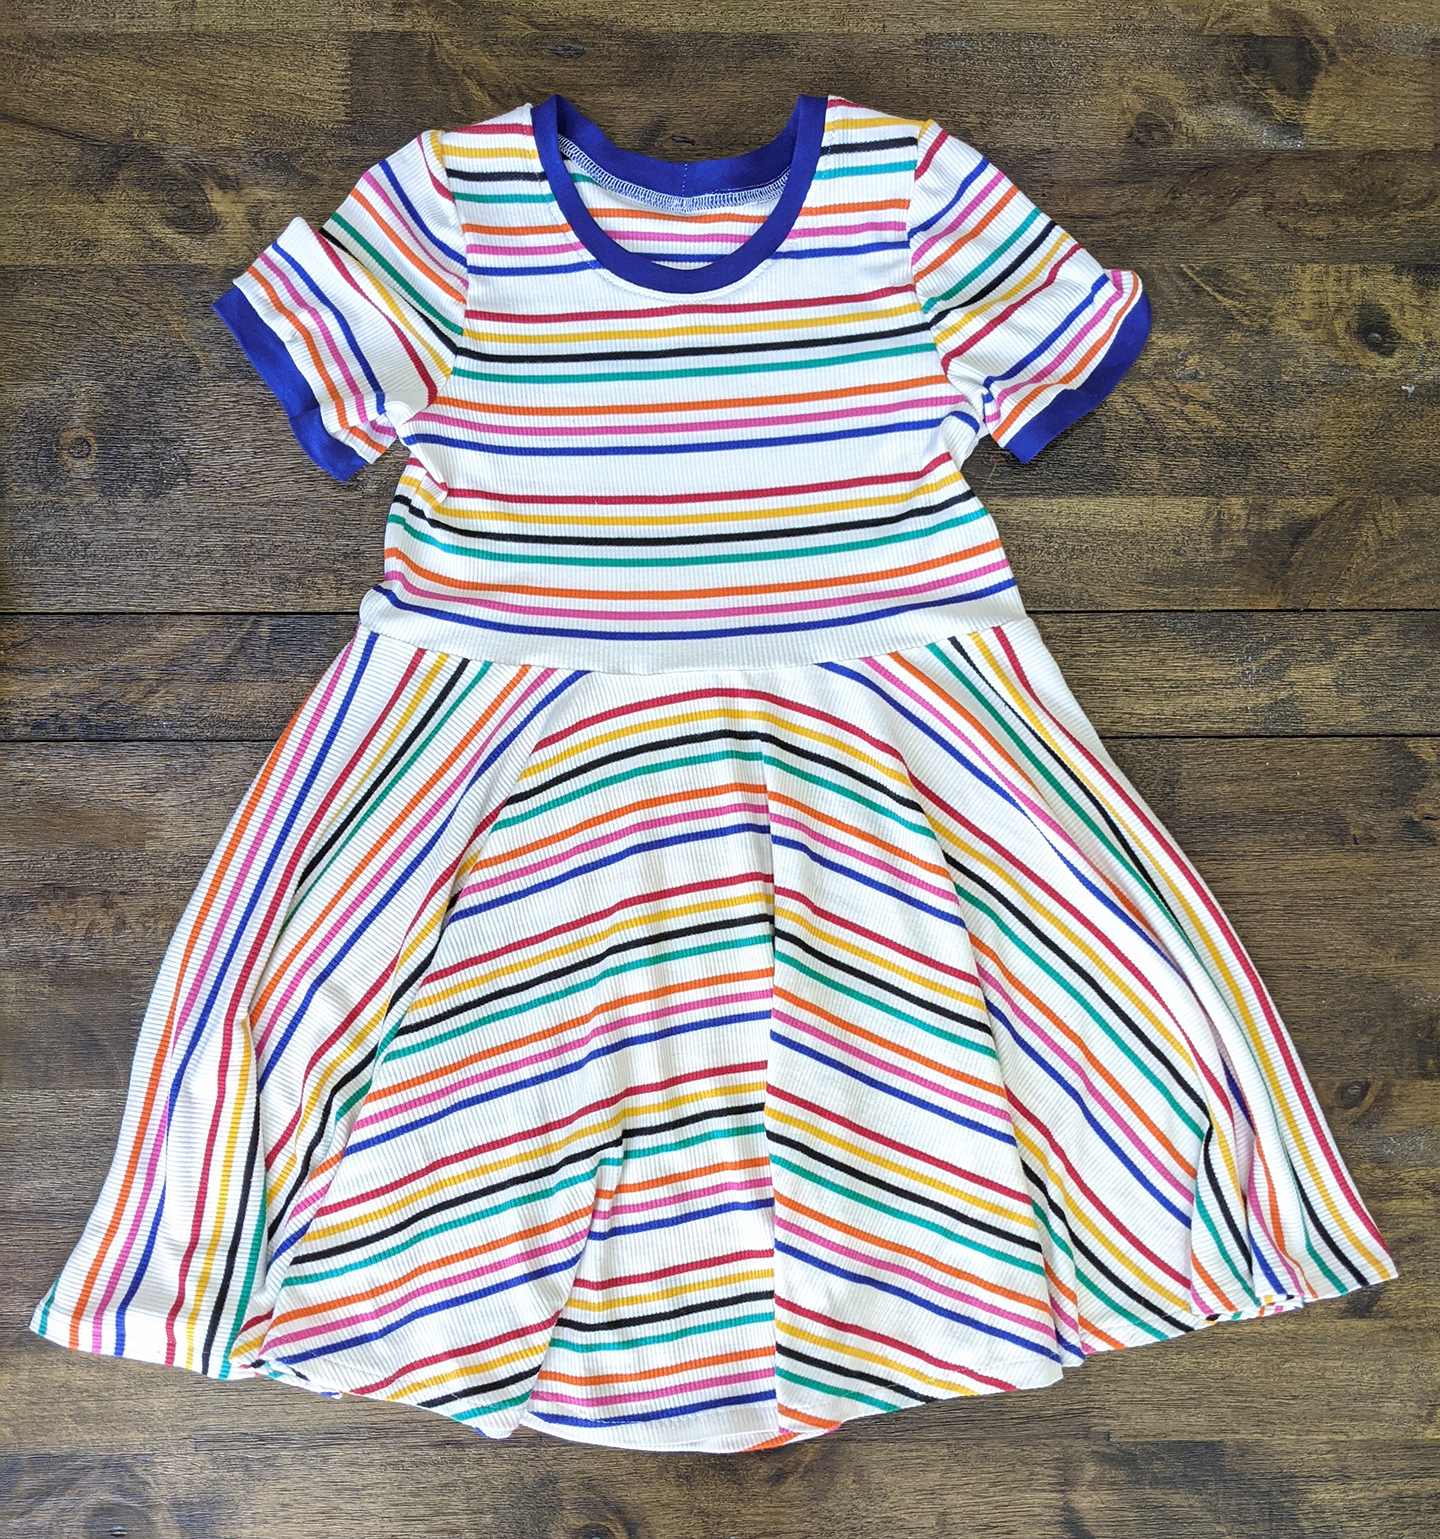 Ellie-Mac-School-Cool-Toddler-Dress-Sewi